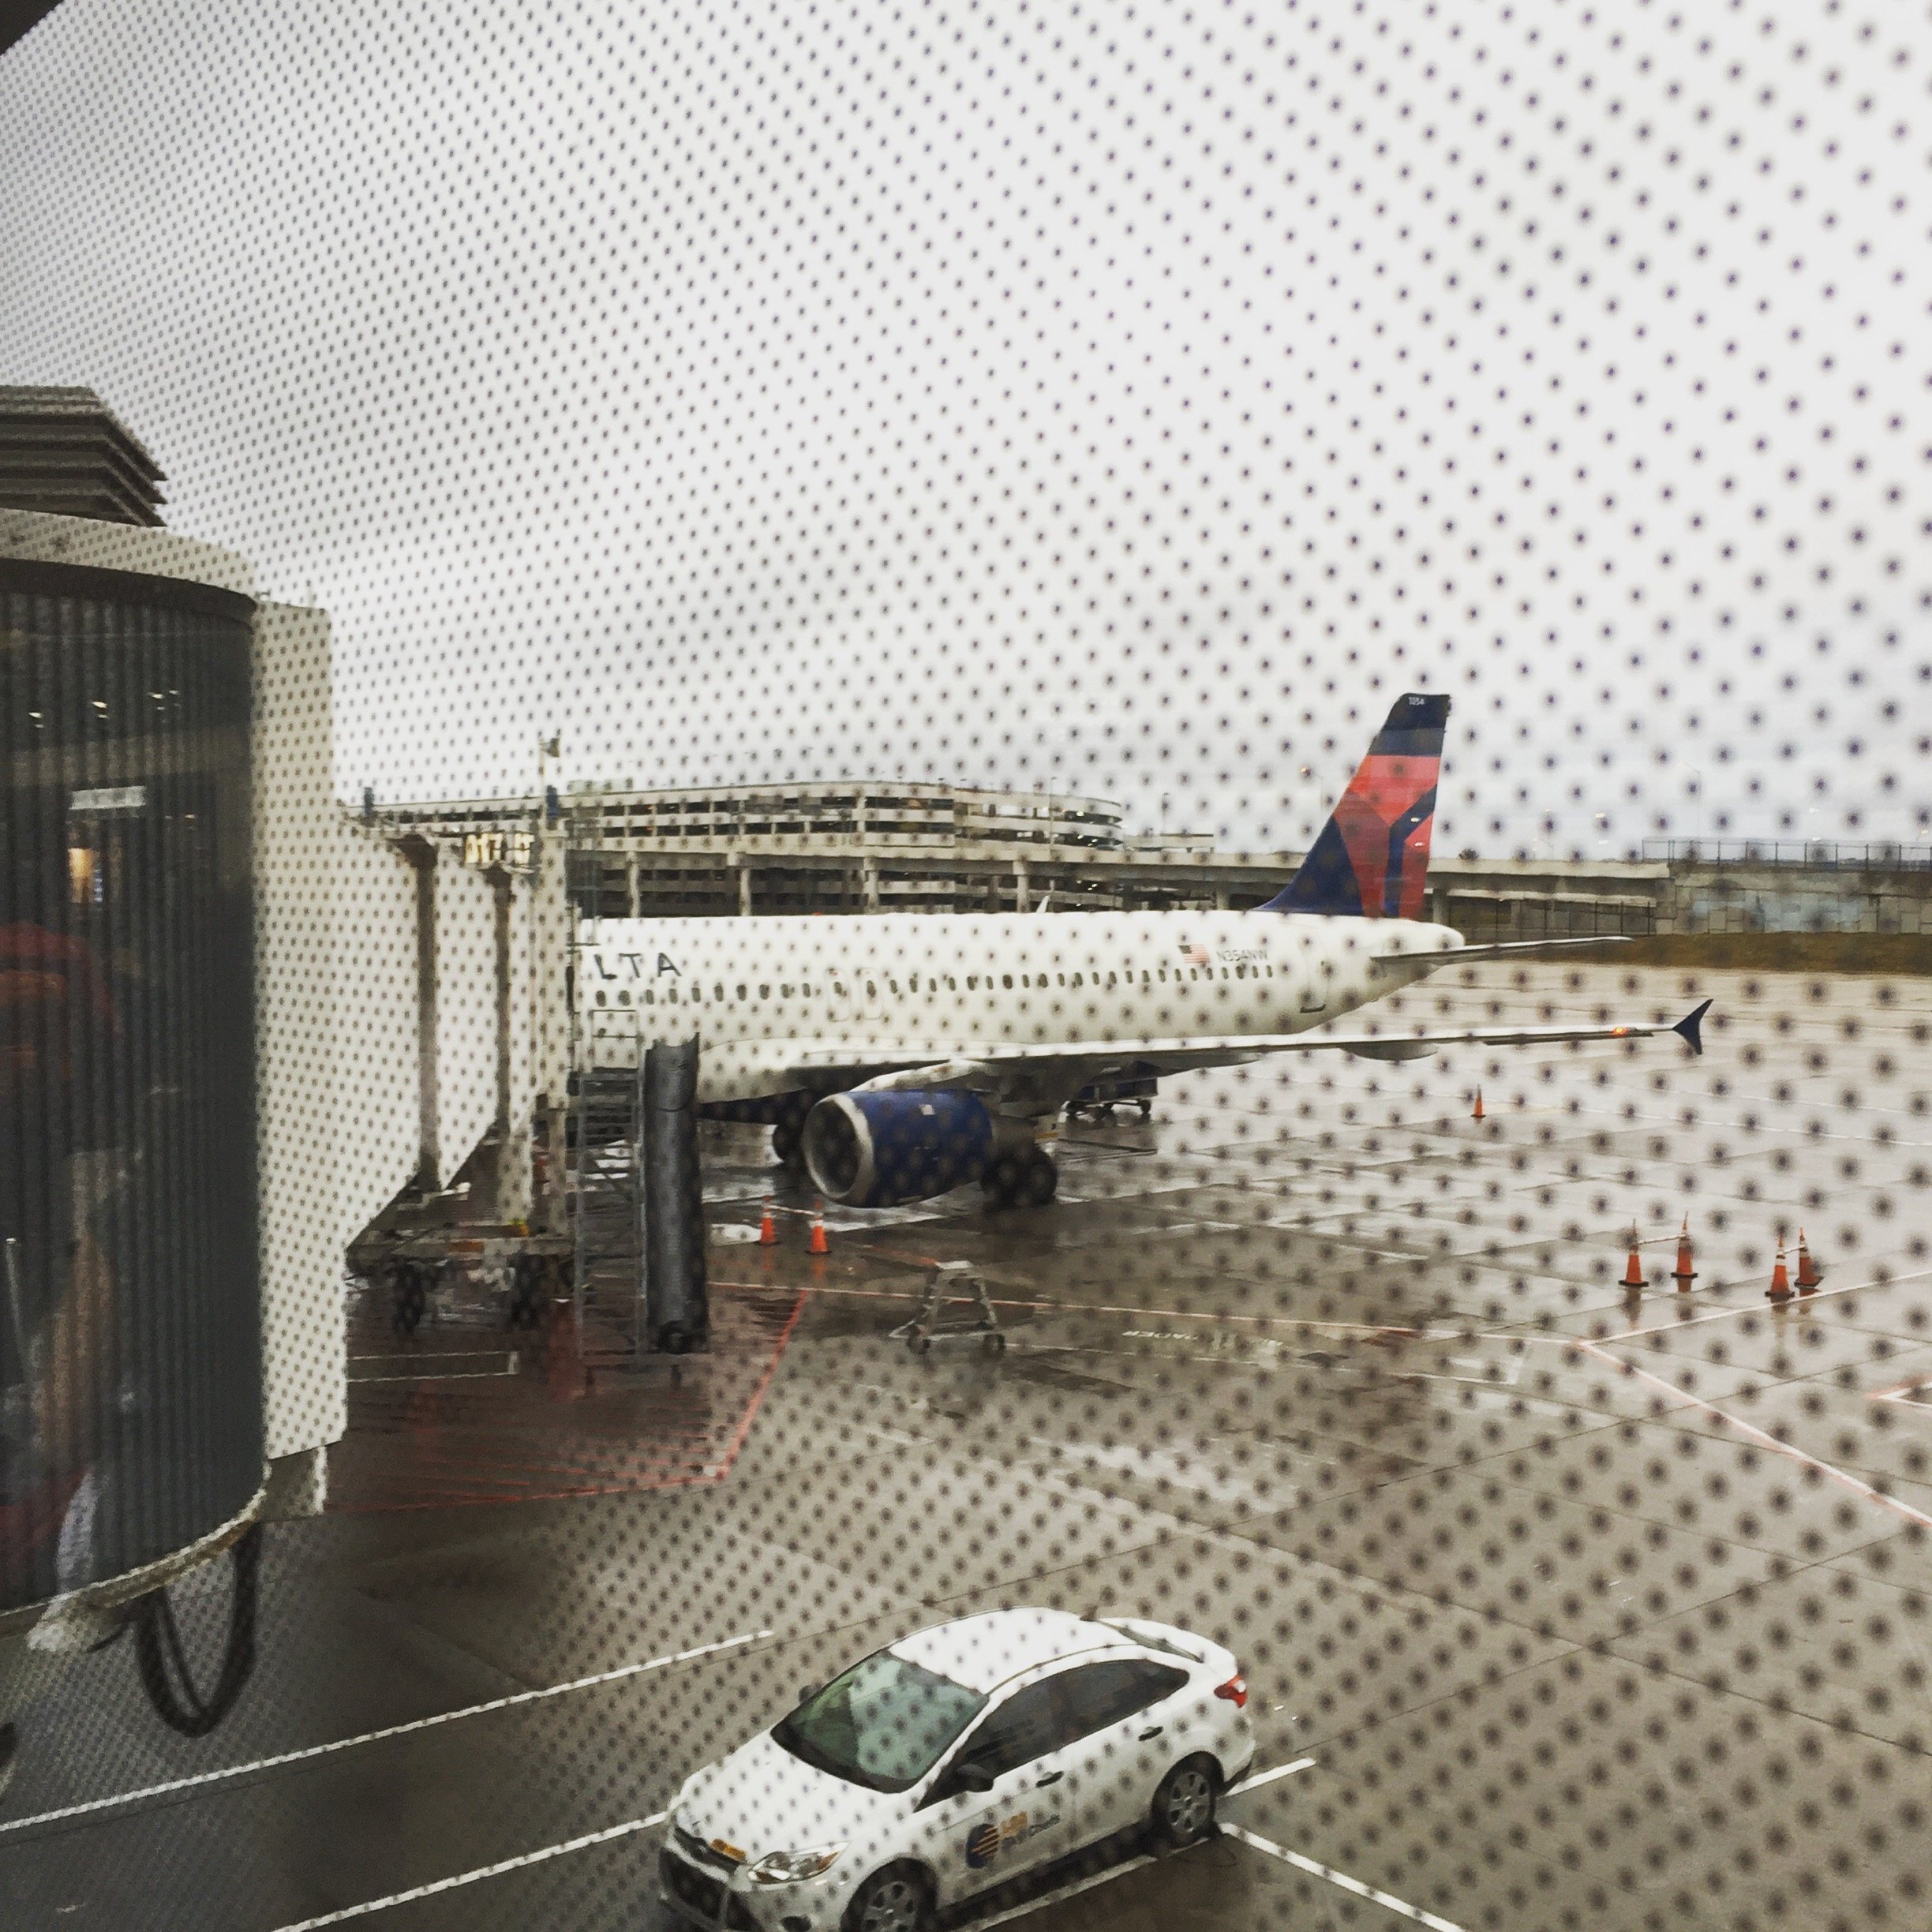 Trip Report – Delta Airlines – Detroit to Minneapolis